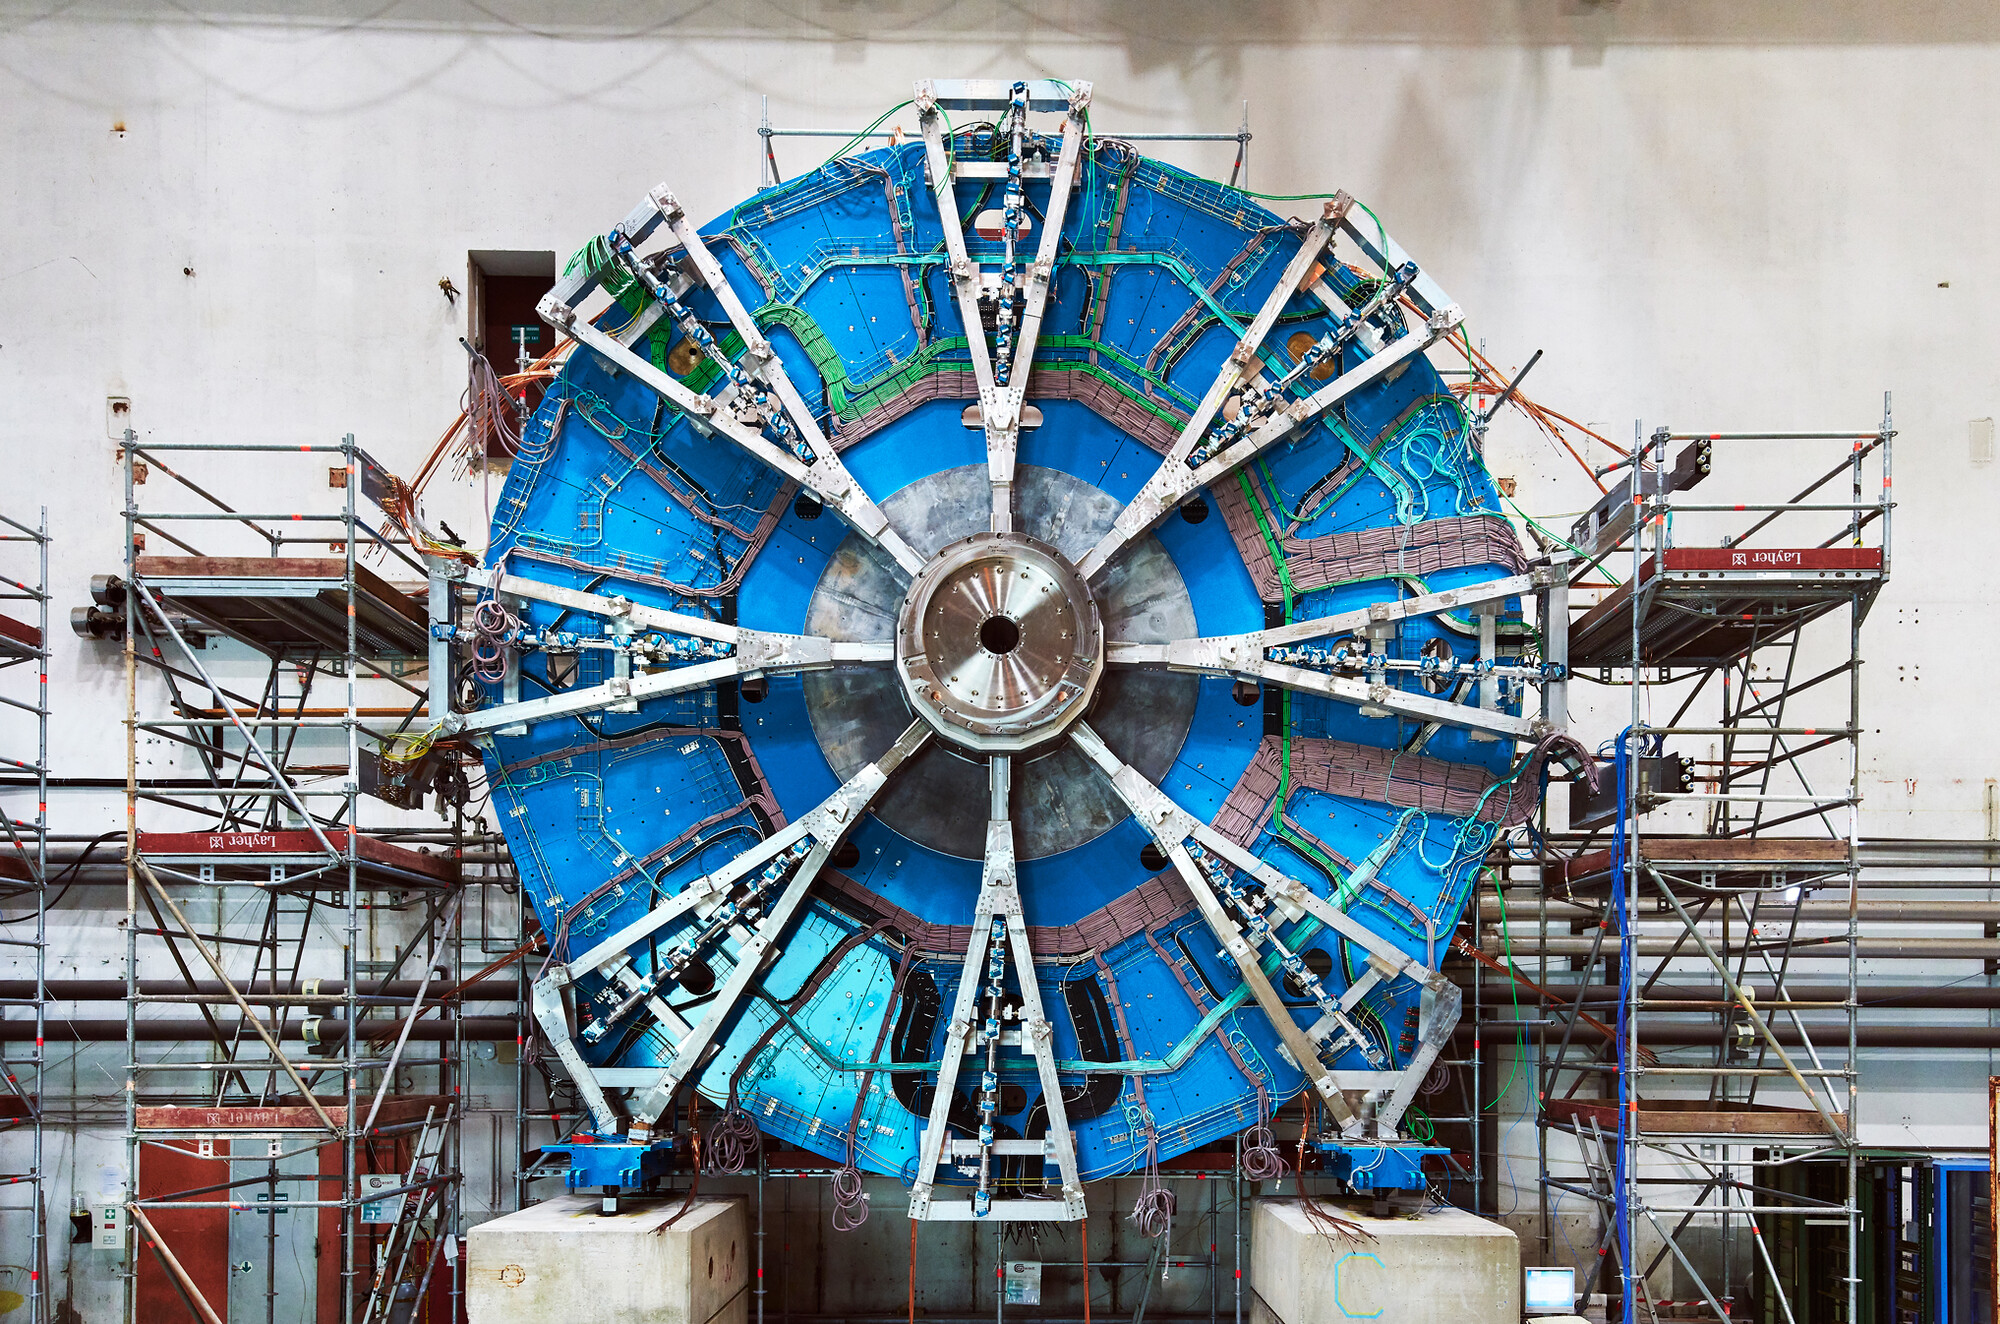 Arts at CERN launches Connect in collaboration with Pro Helvetia - Announcements - Art Education